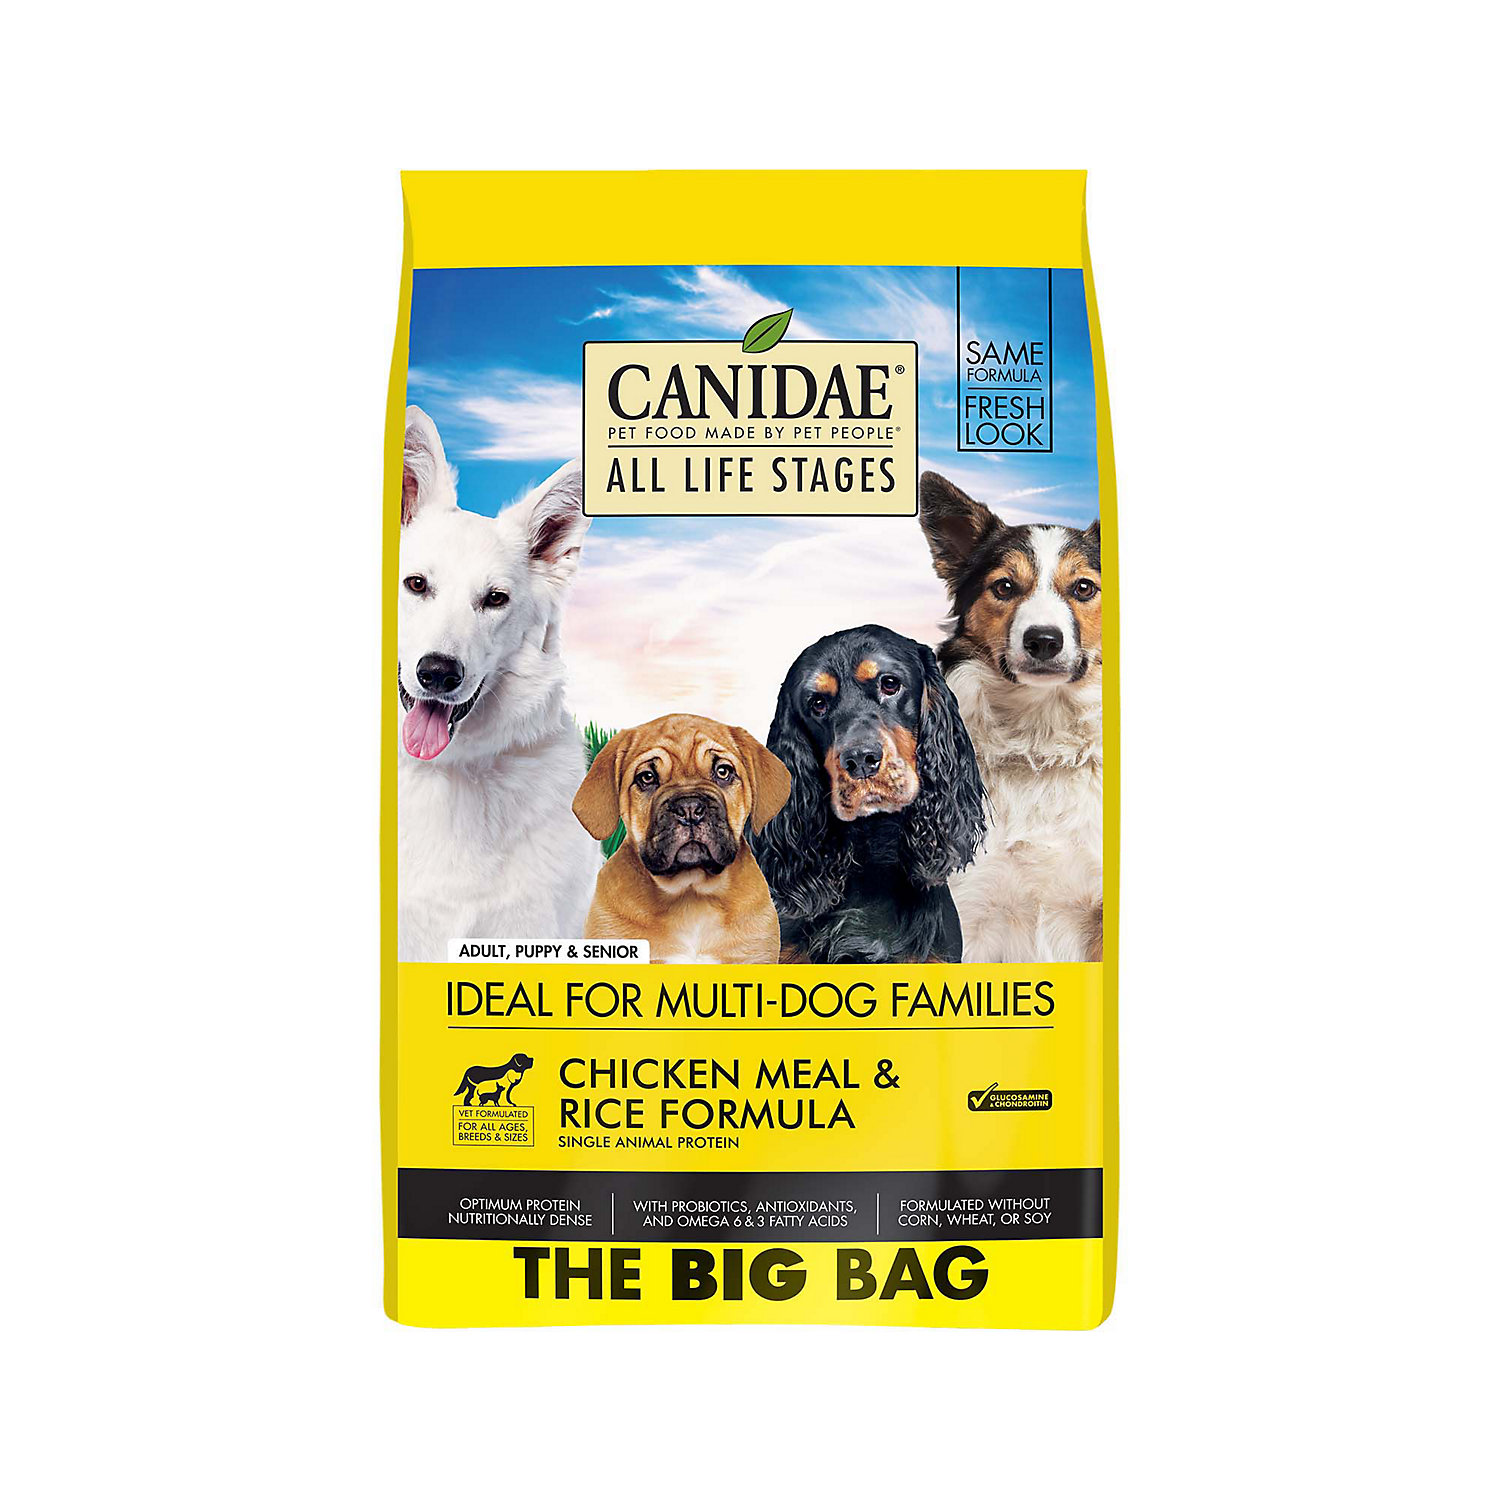 CANIDAE Grain Free PURE Dog Dry Food Chicken Meal  Rice Formula